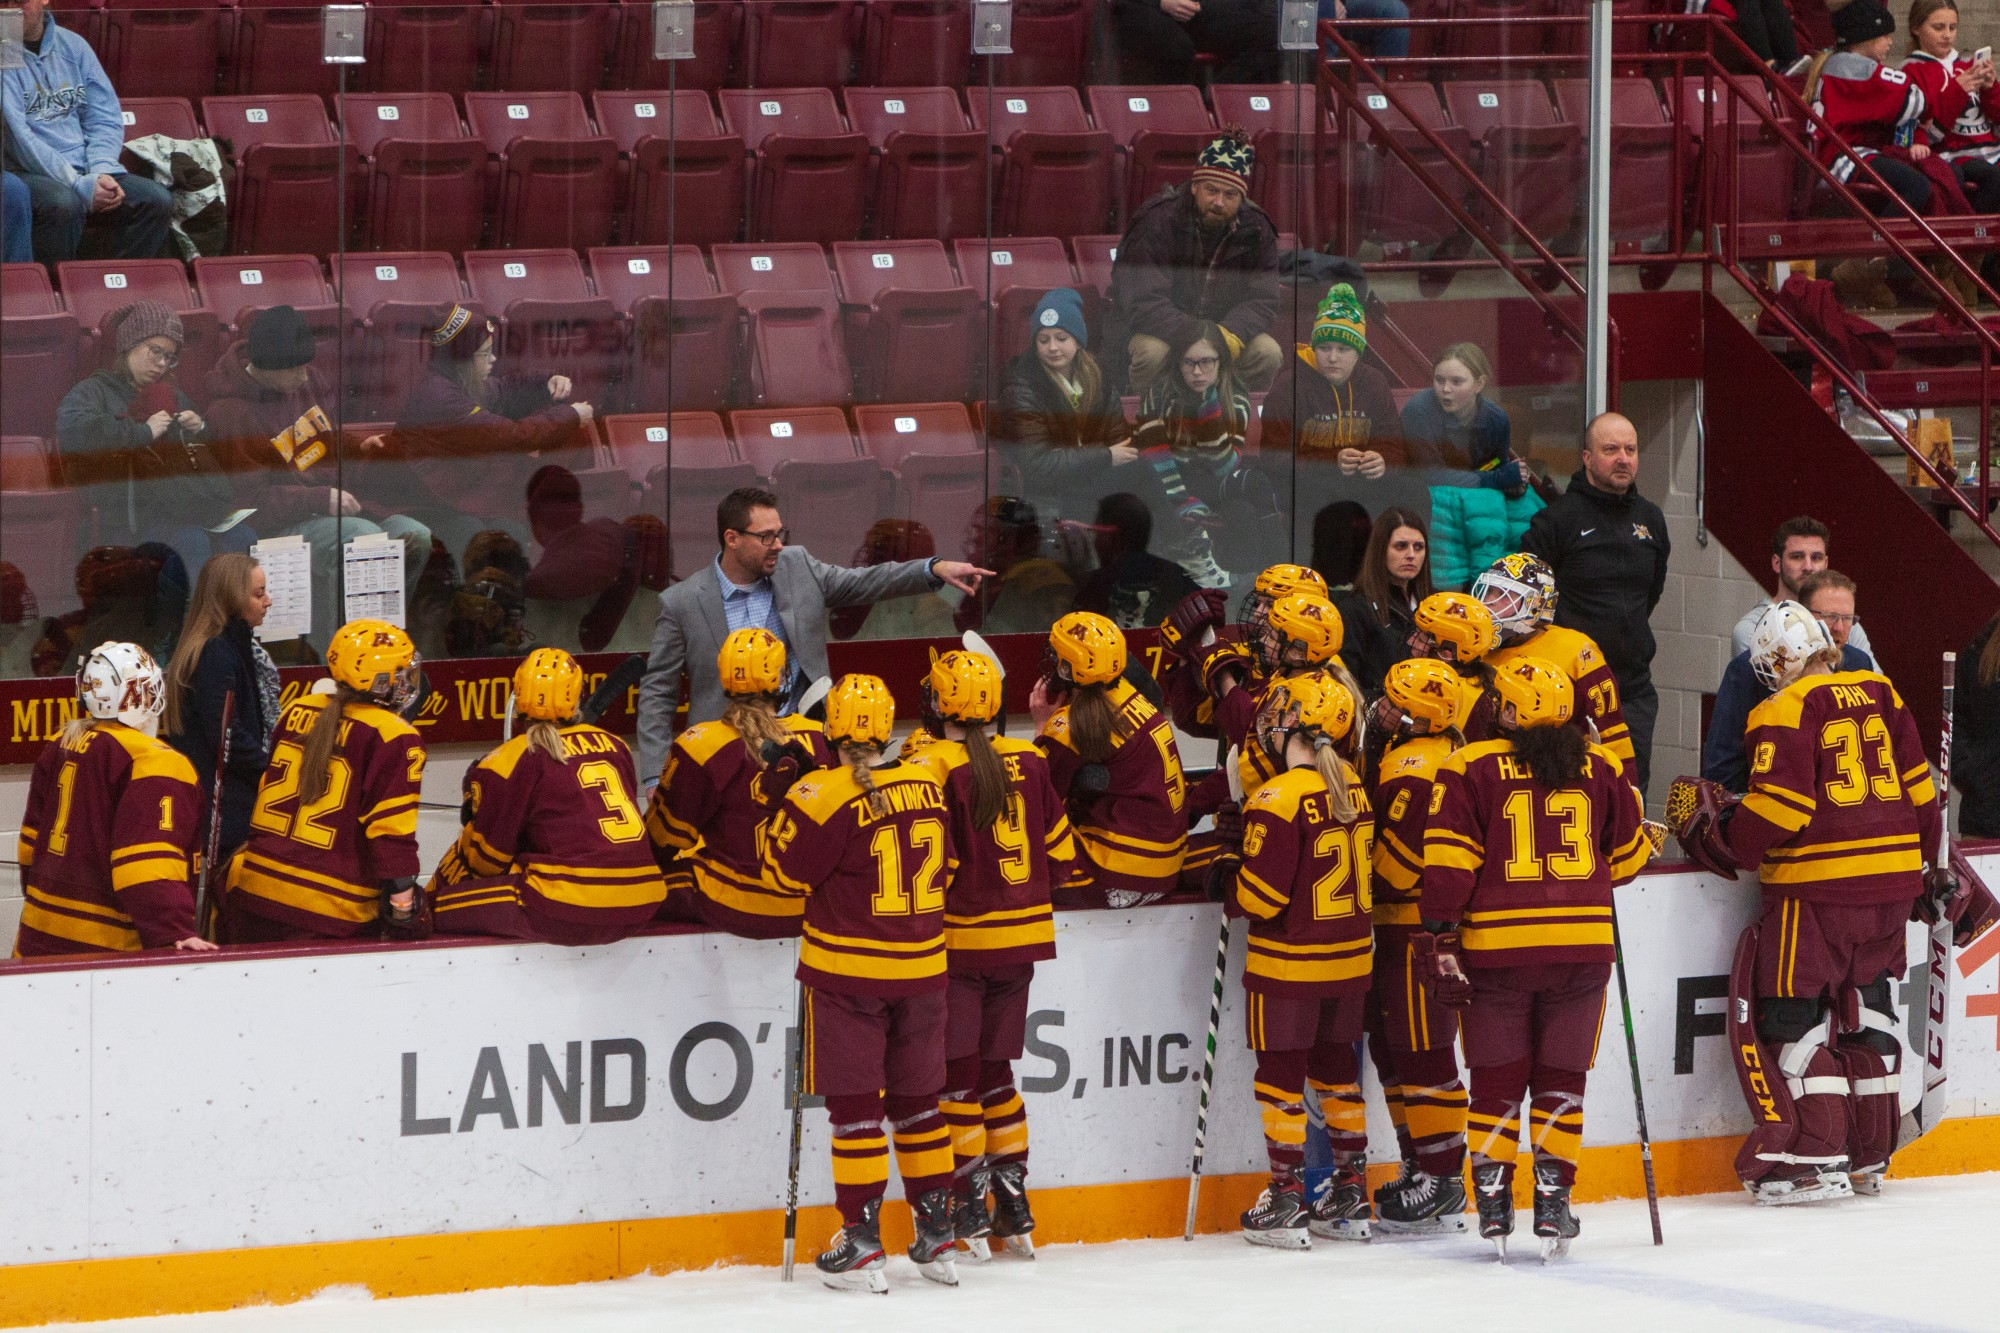 Gophers Head Coach Brad Frost addresses the team during a timeout at Ridder Arena on Friday, Jan. 17.  Minnesota suffered a 1-4 loss to Ohio State. (Kamaan Richards / Minnesota Daily)